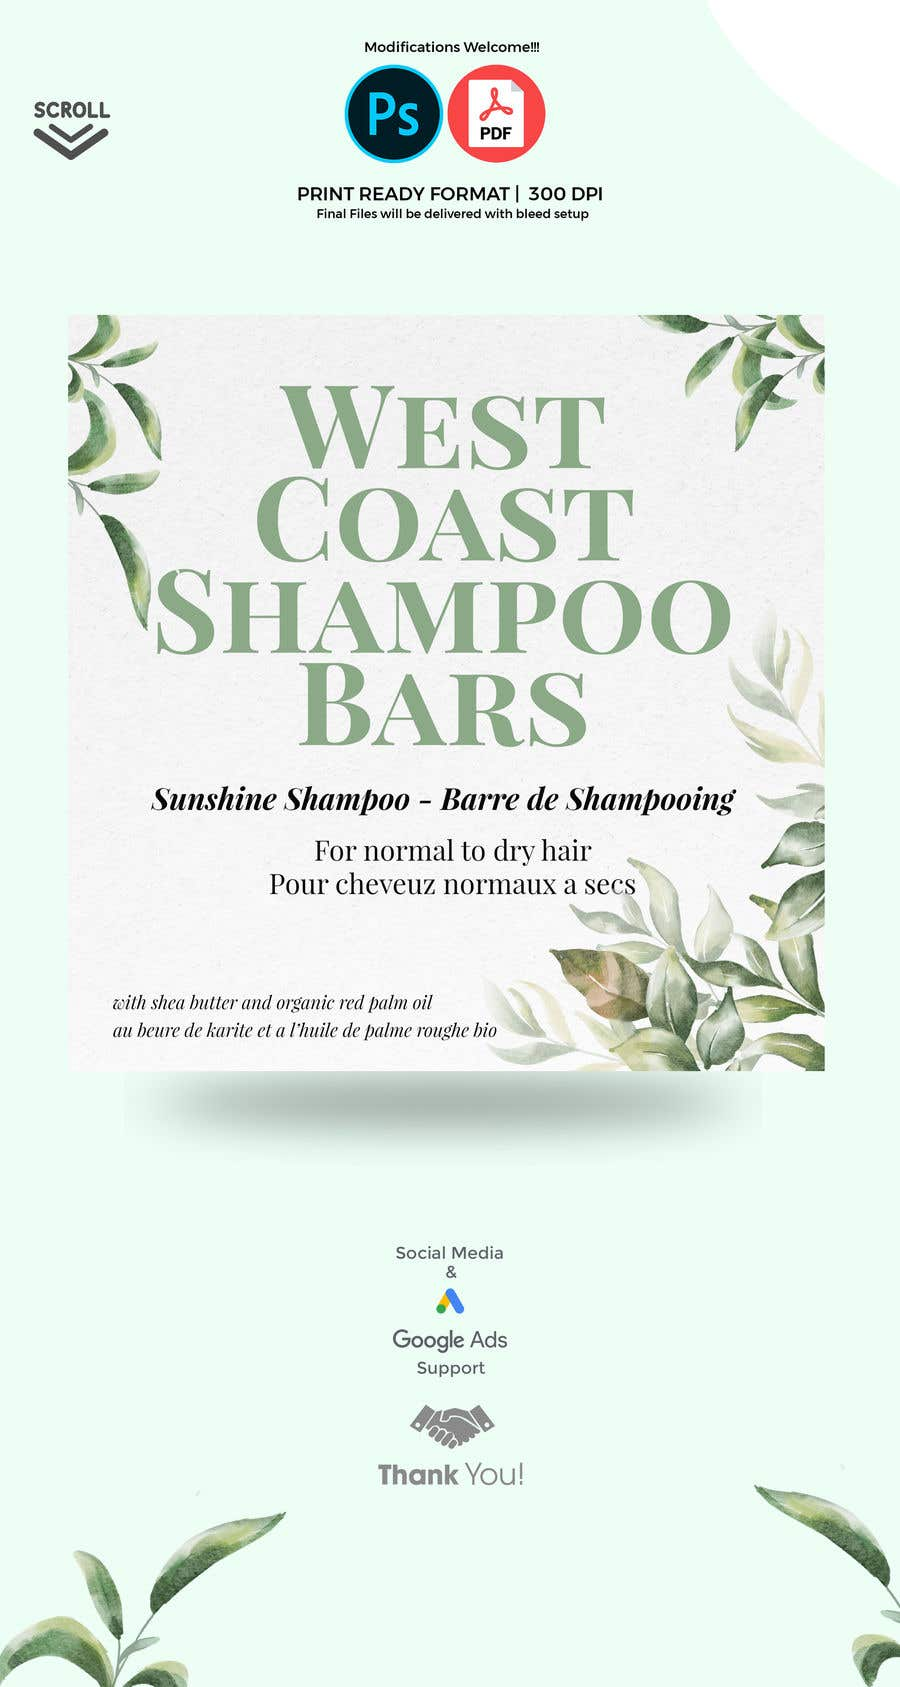 Bài tham dự cuộc thi #                                        1                                      cho                                         I need design help for packaging for shampoo and conditioner bars